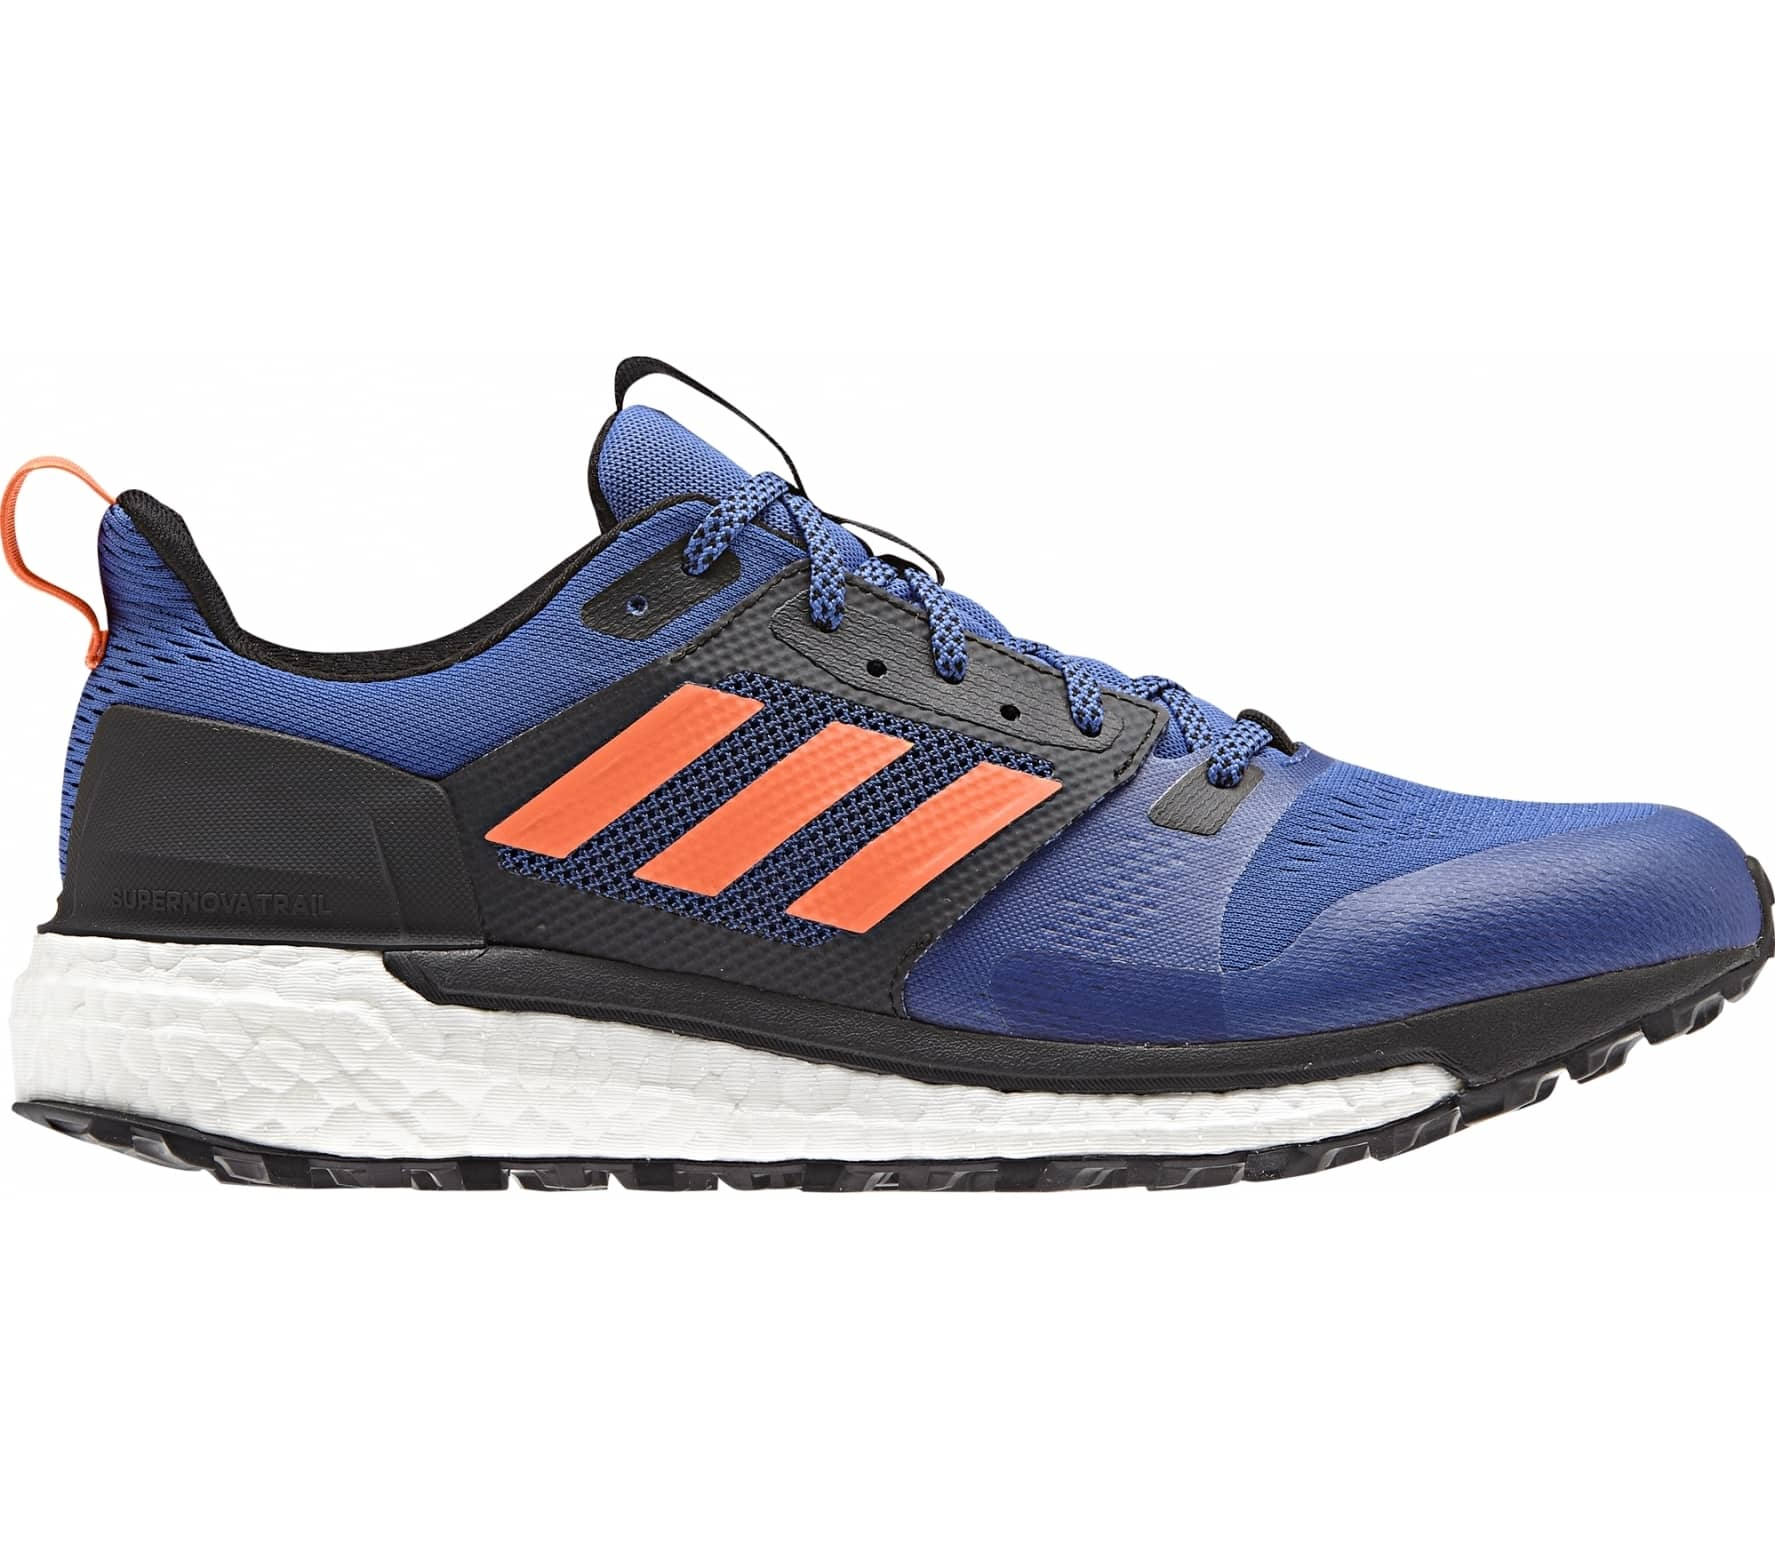 Adidas Outdoor Supernova Boost Trail Running Shoe Men's